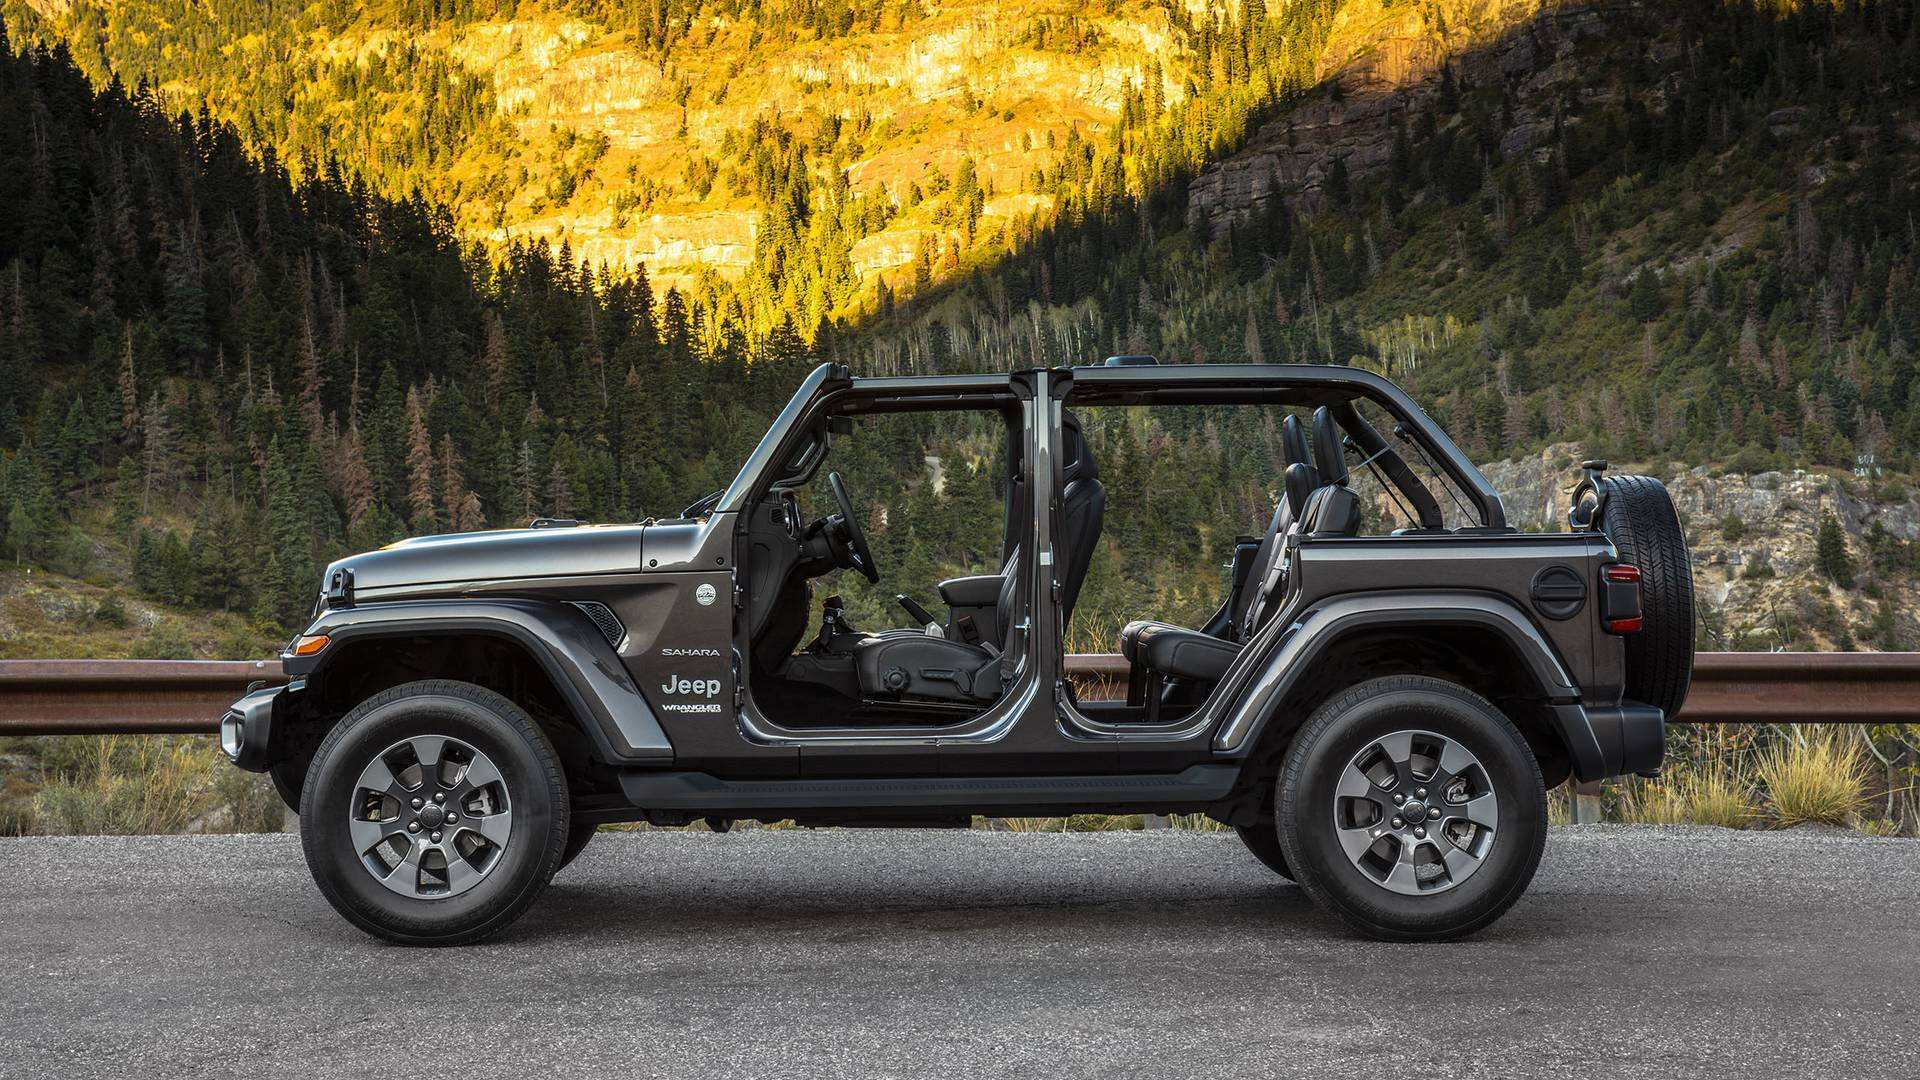 38 All New 2019 Jeep Wrangler Diesel Research New